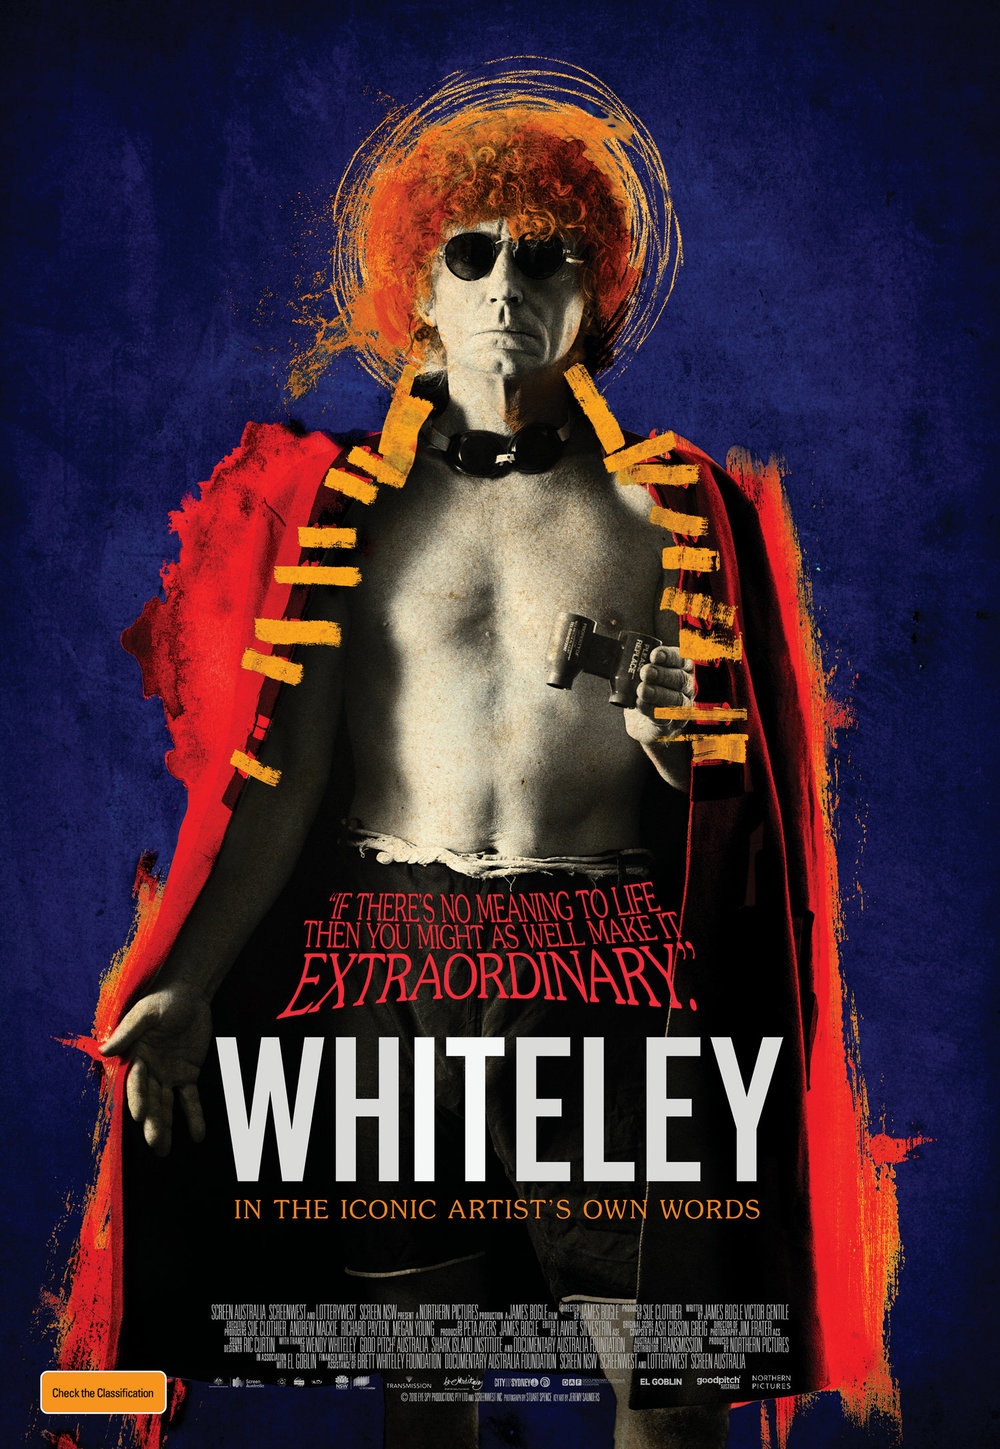 'Whiteley' feature film